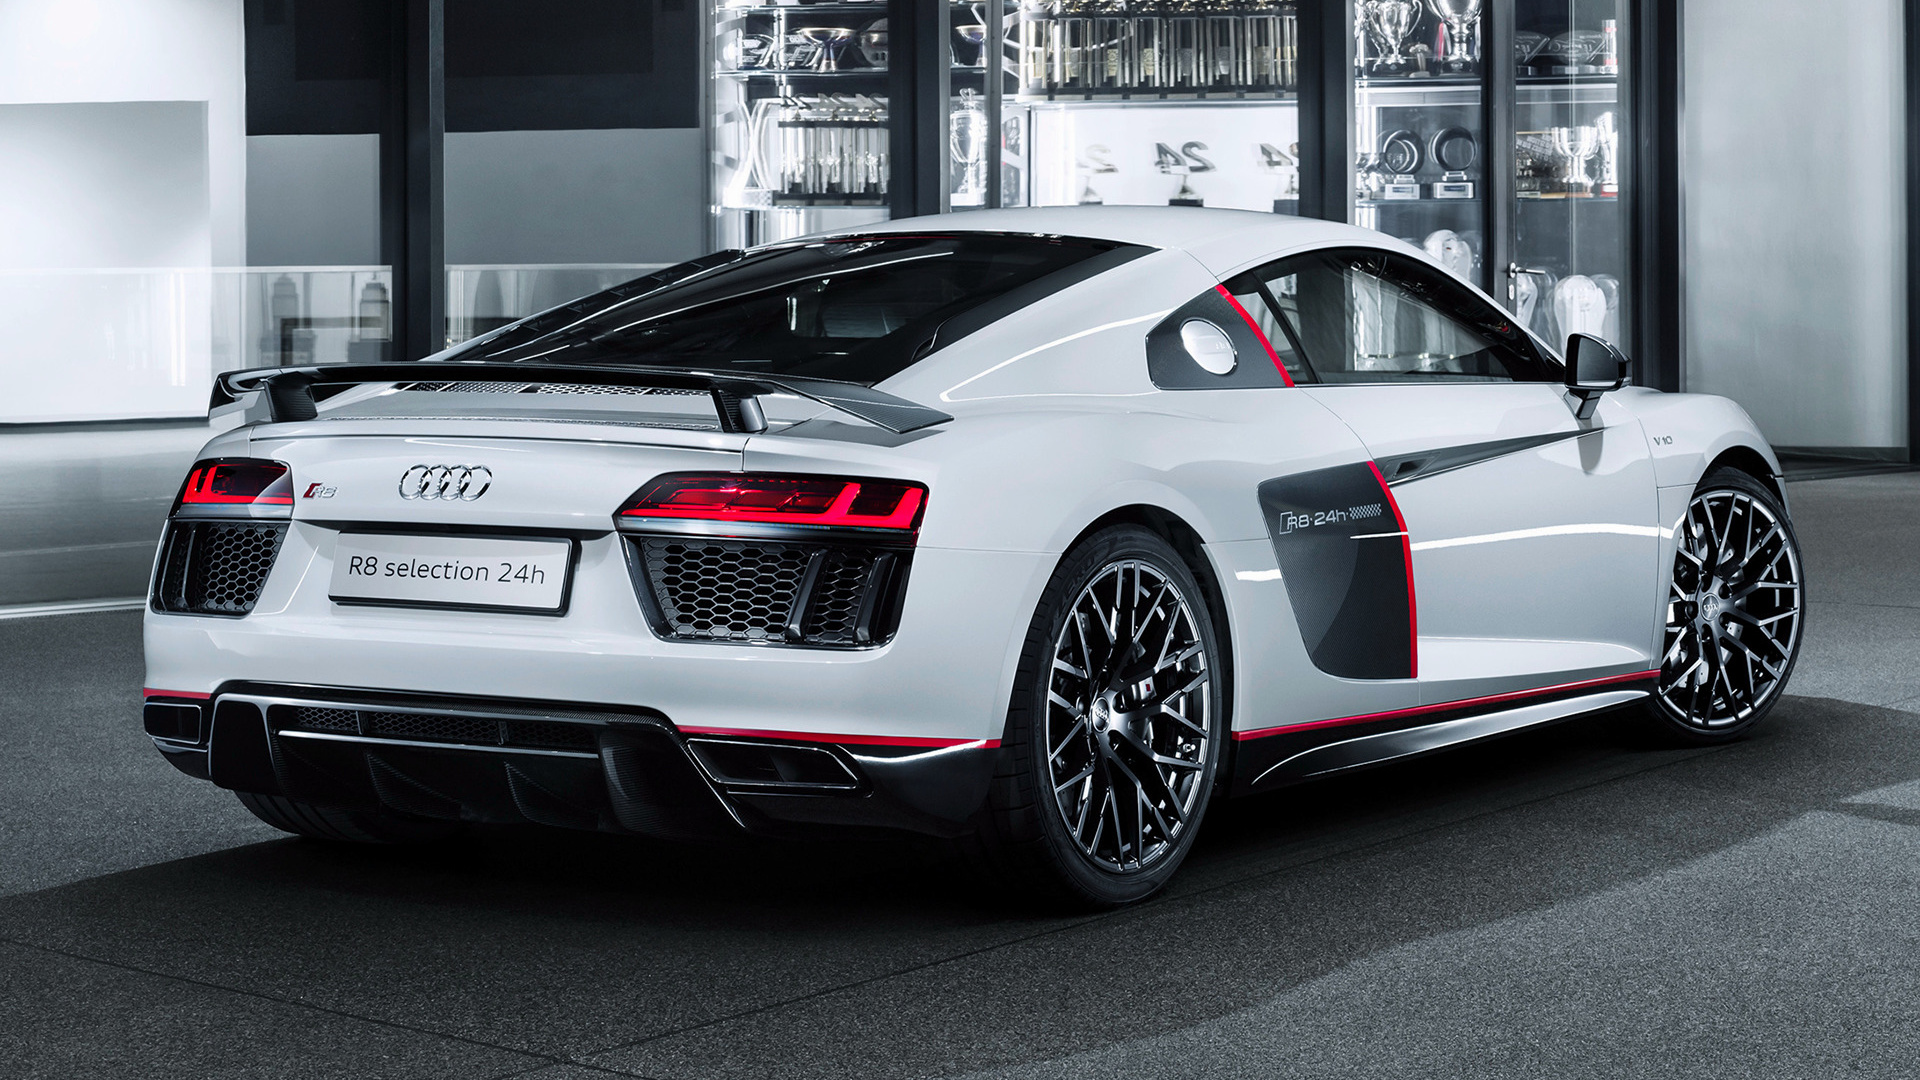 2016 Audi R8 V10 Plus Selection 24h Hd Wallpaper